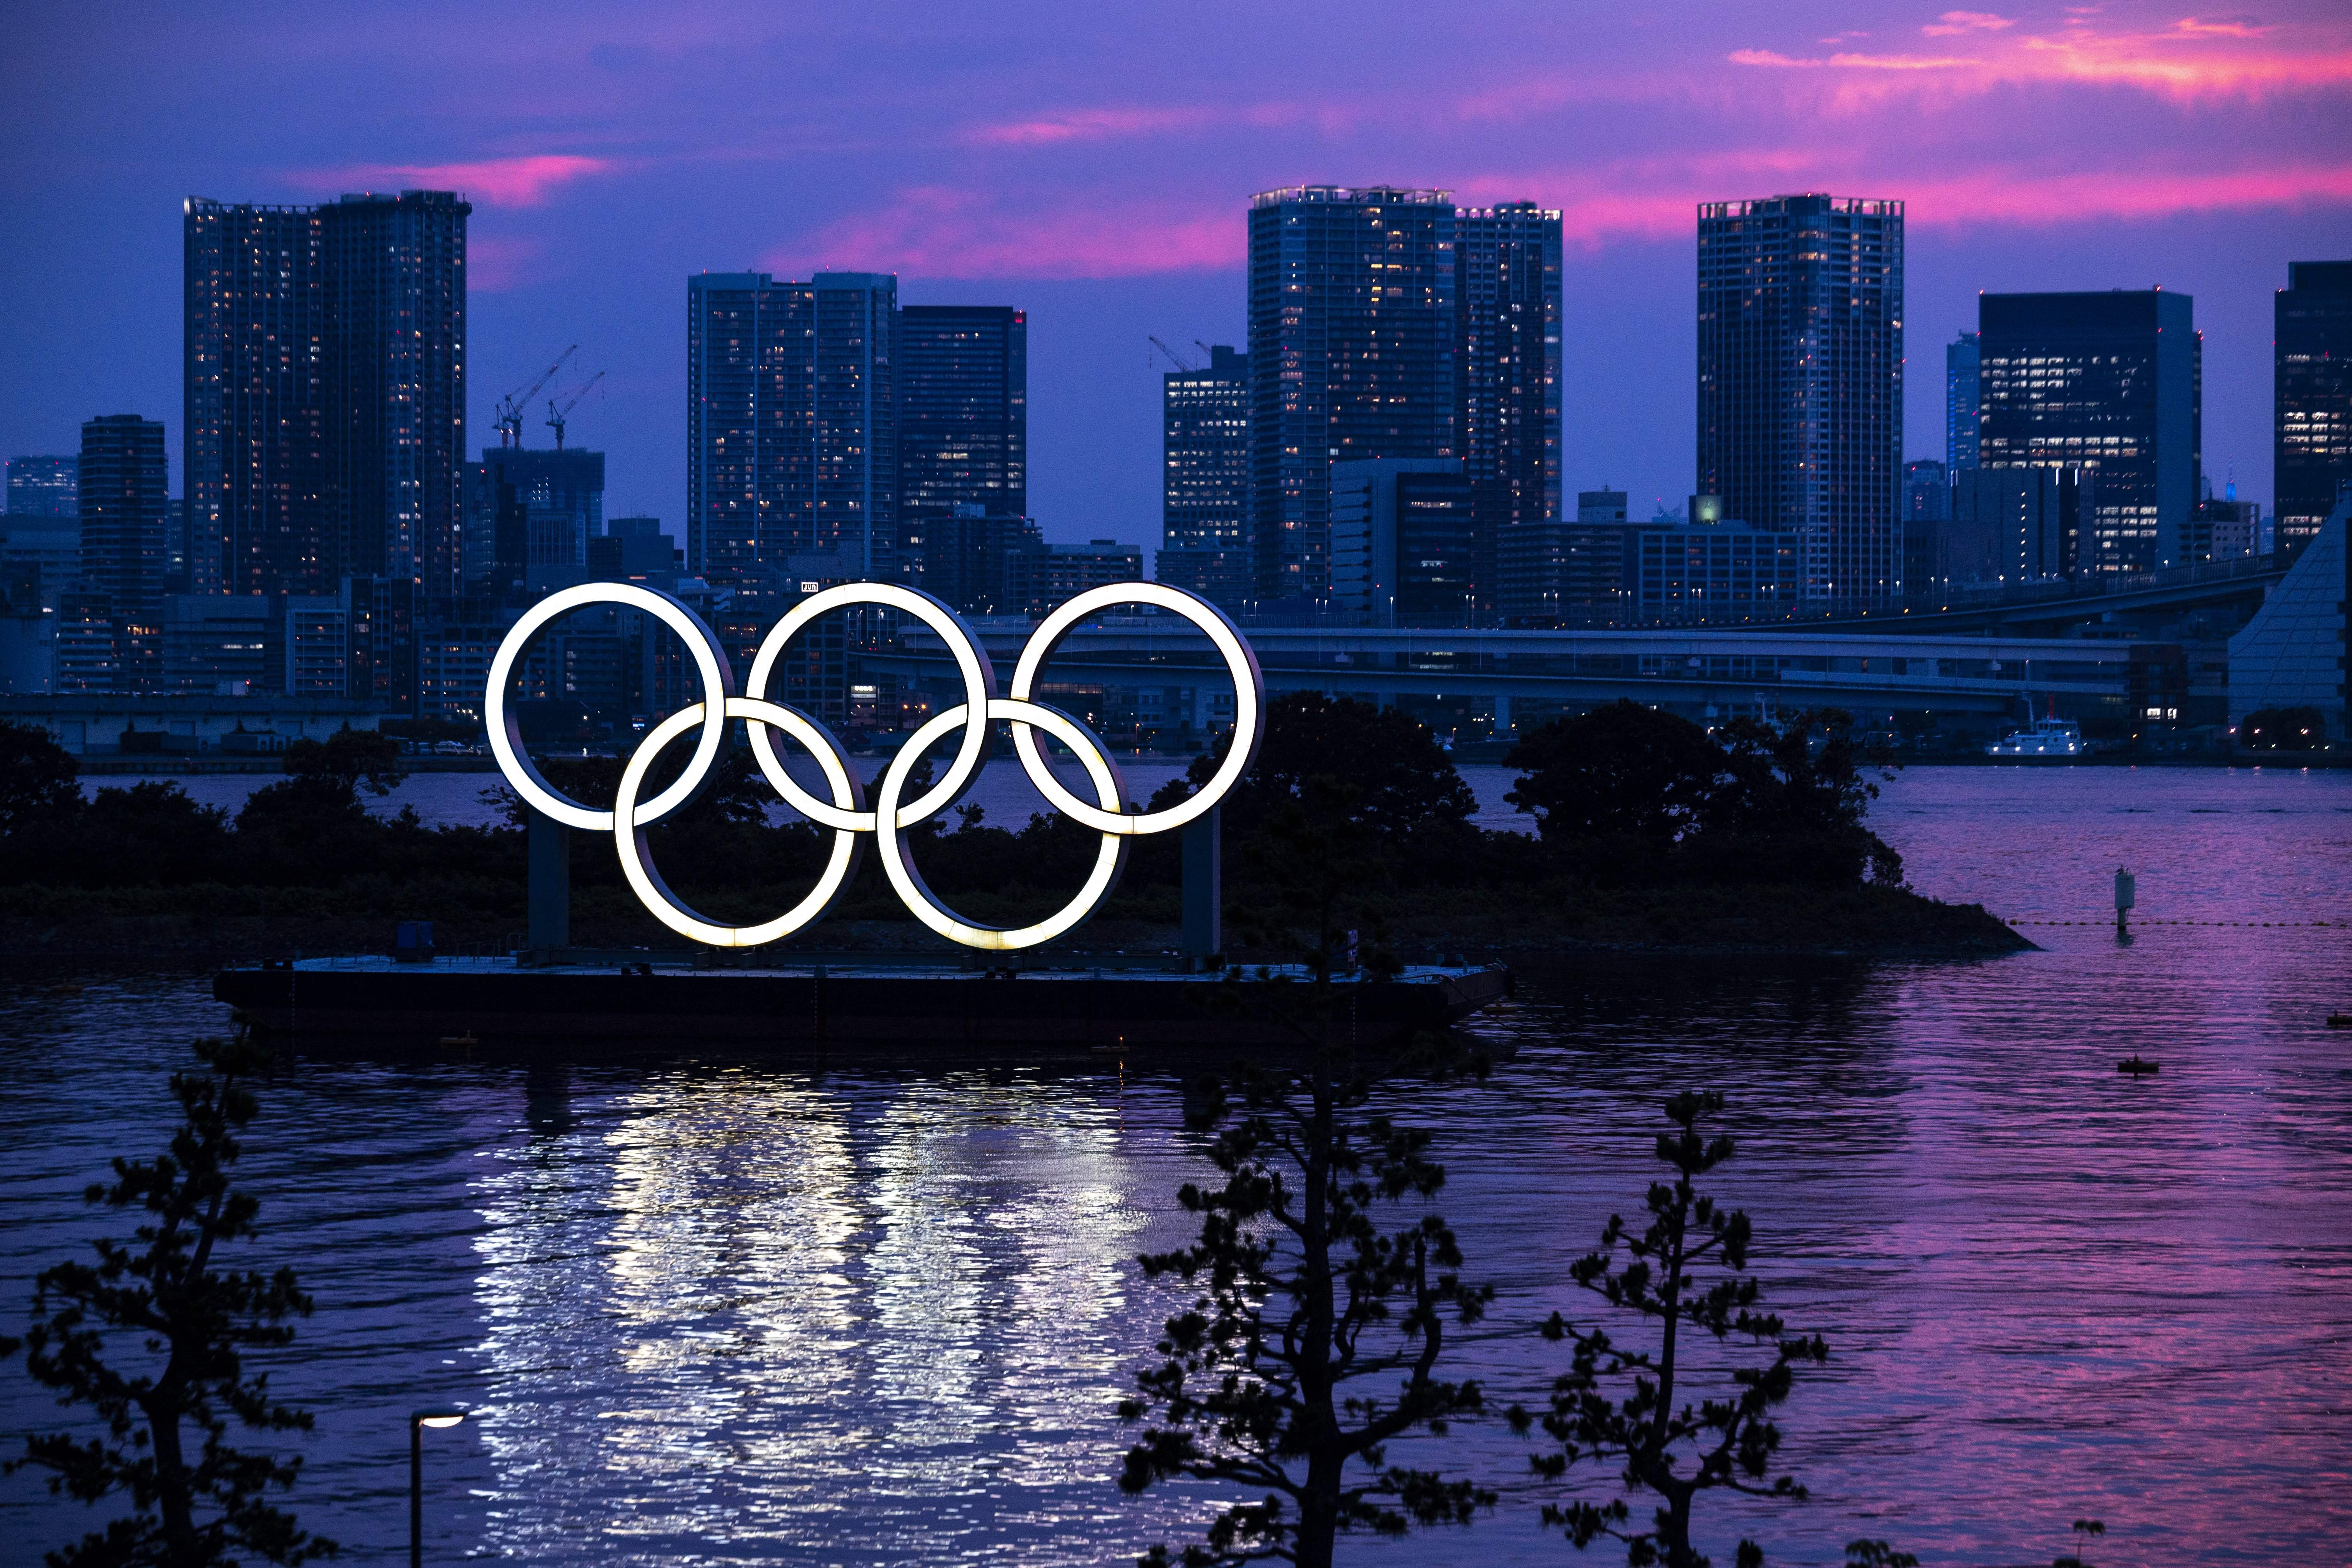 Tokyo Olympics Committee Announces 1st Positive Case of COVID-19 in Olympic Village